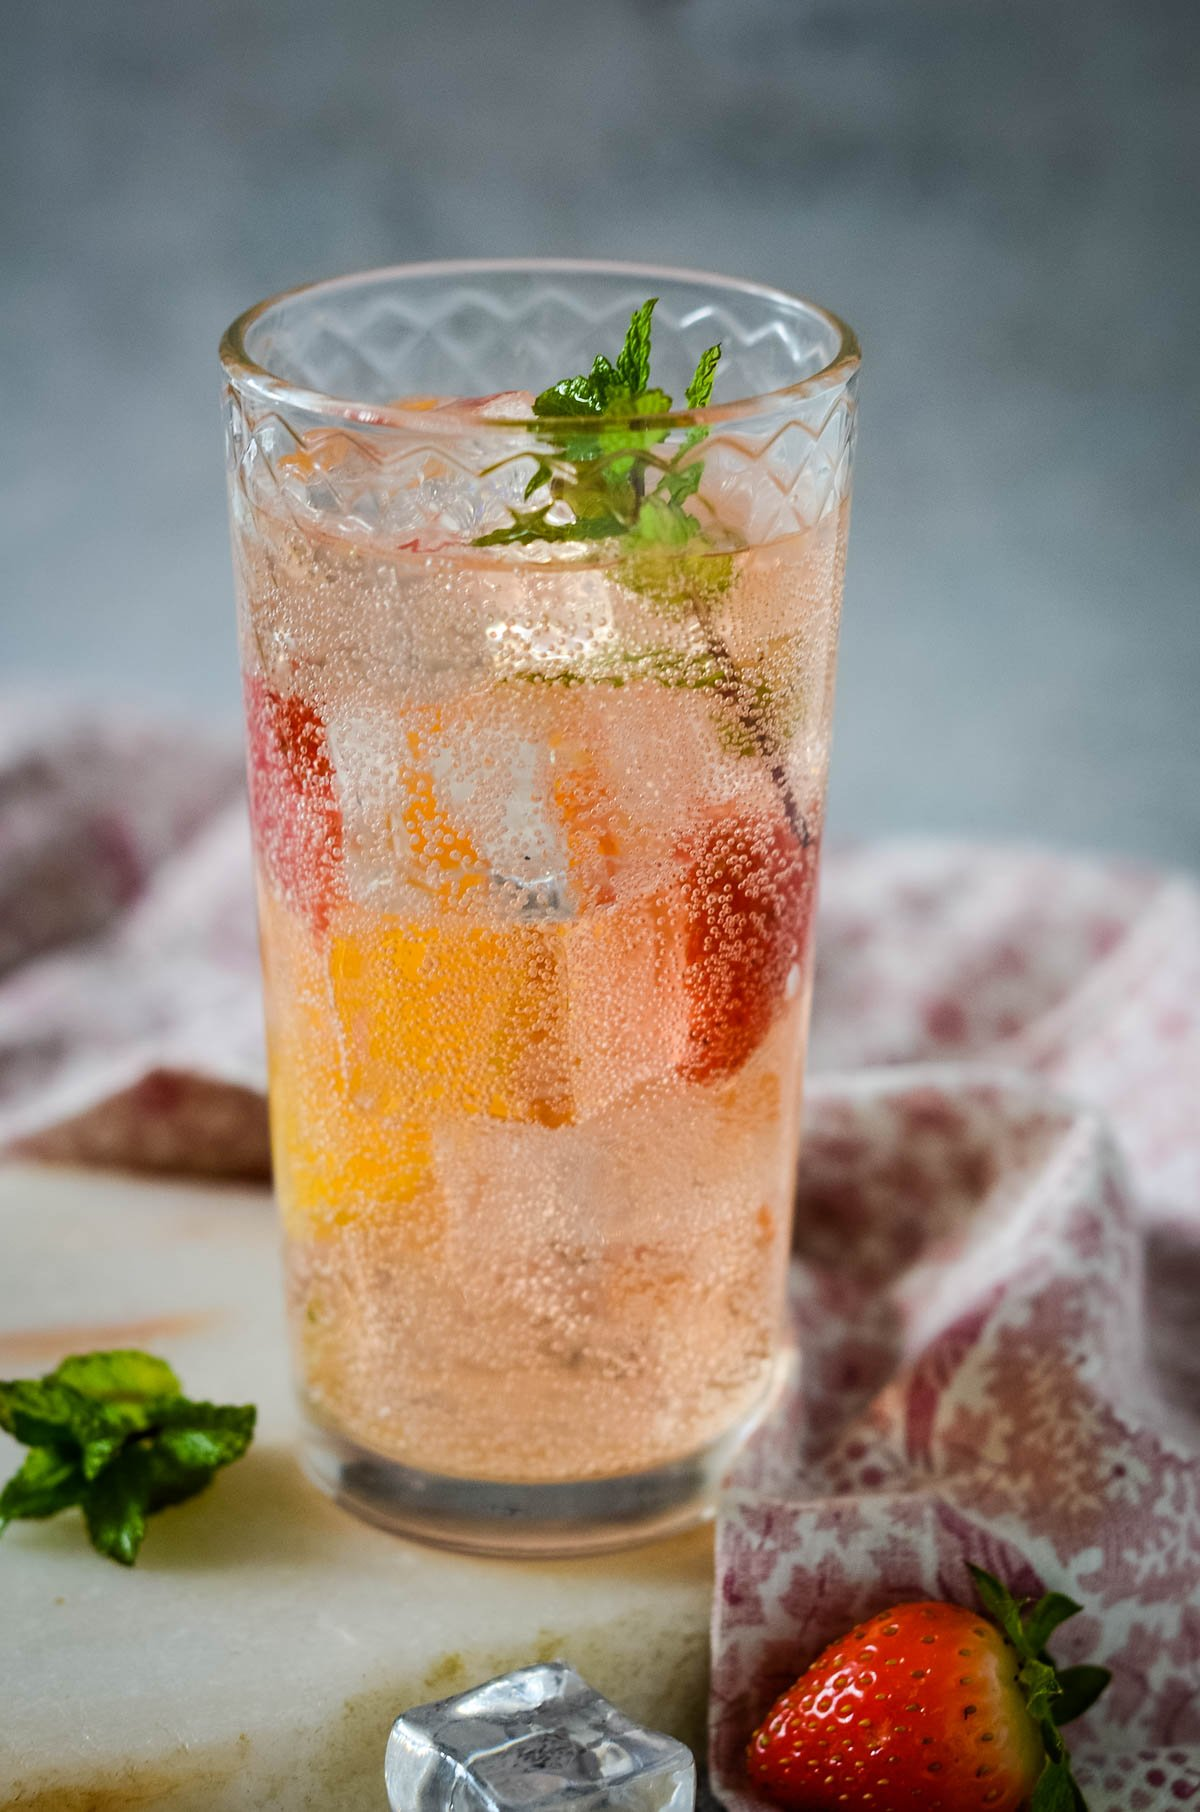 strawberry and mint shrub diluted with soad in a tall glass